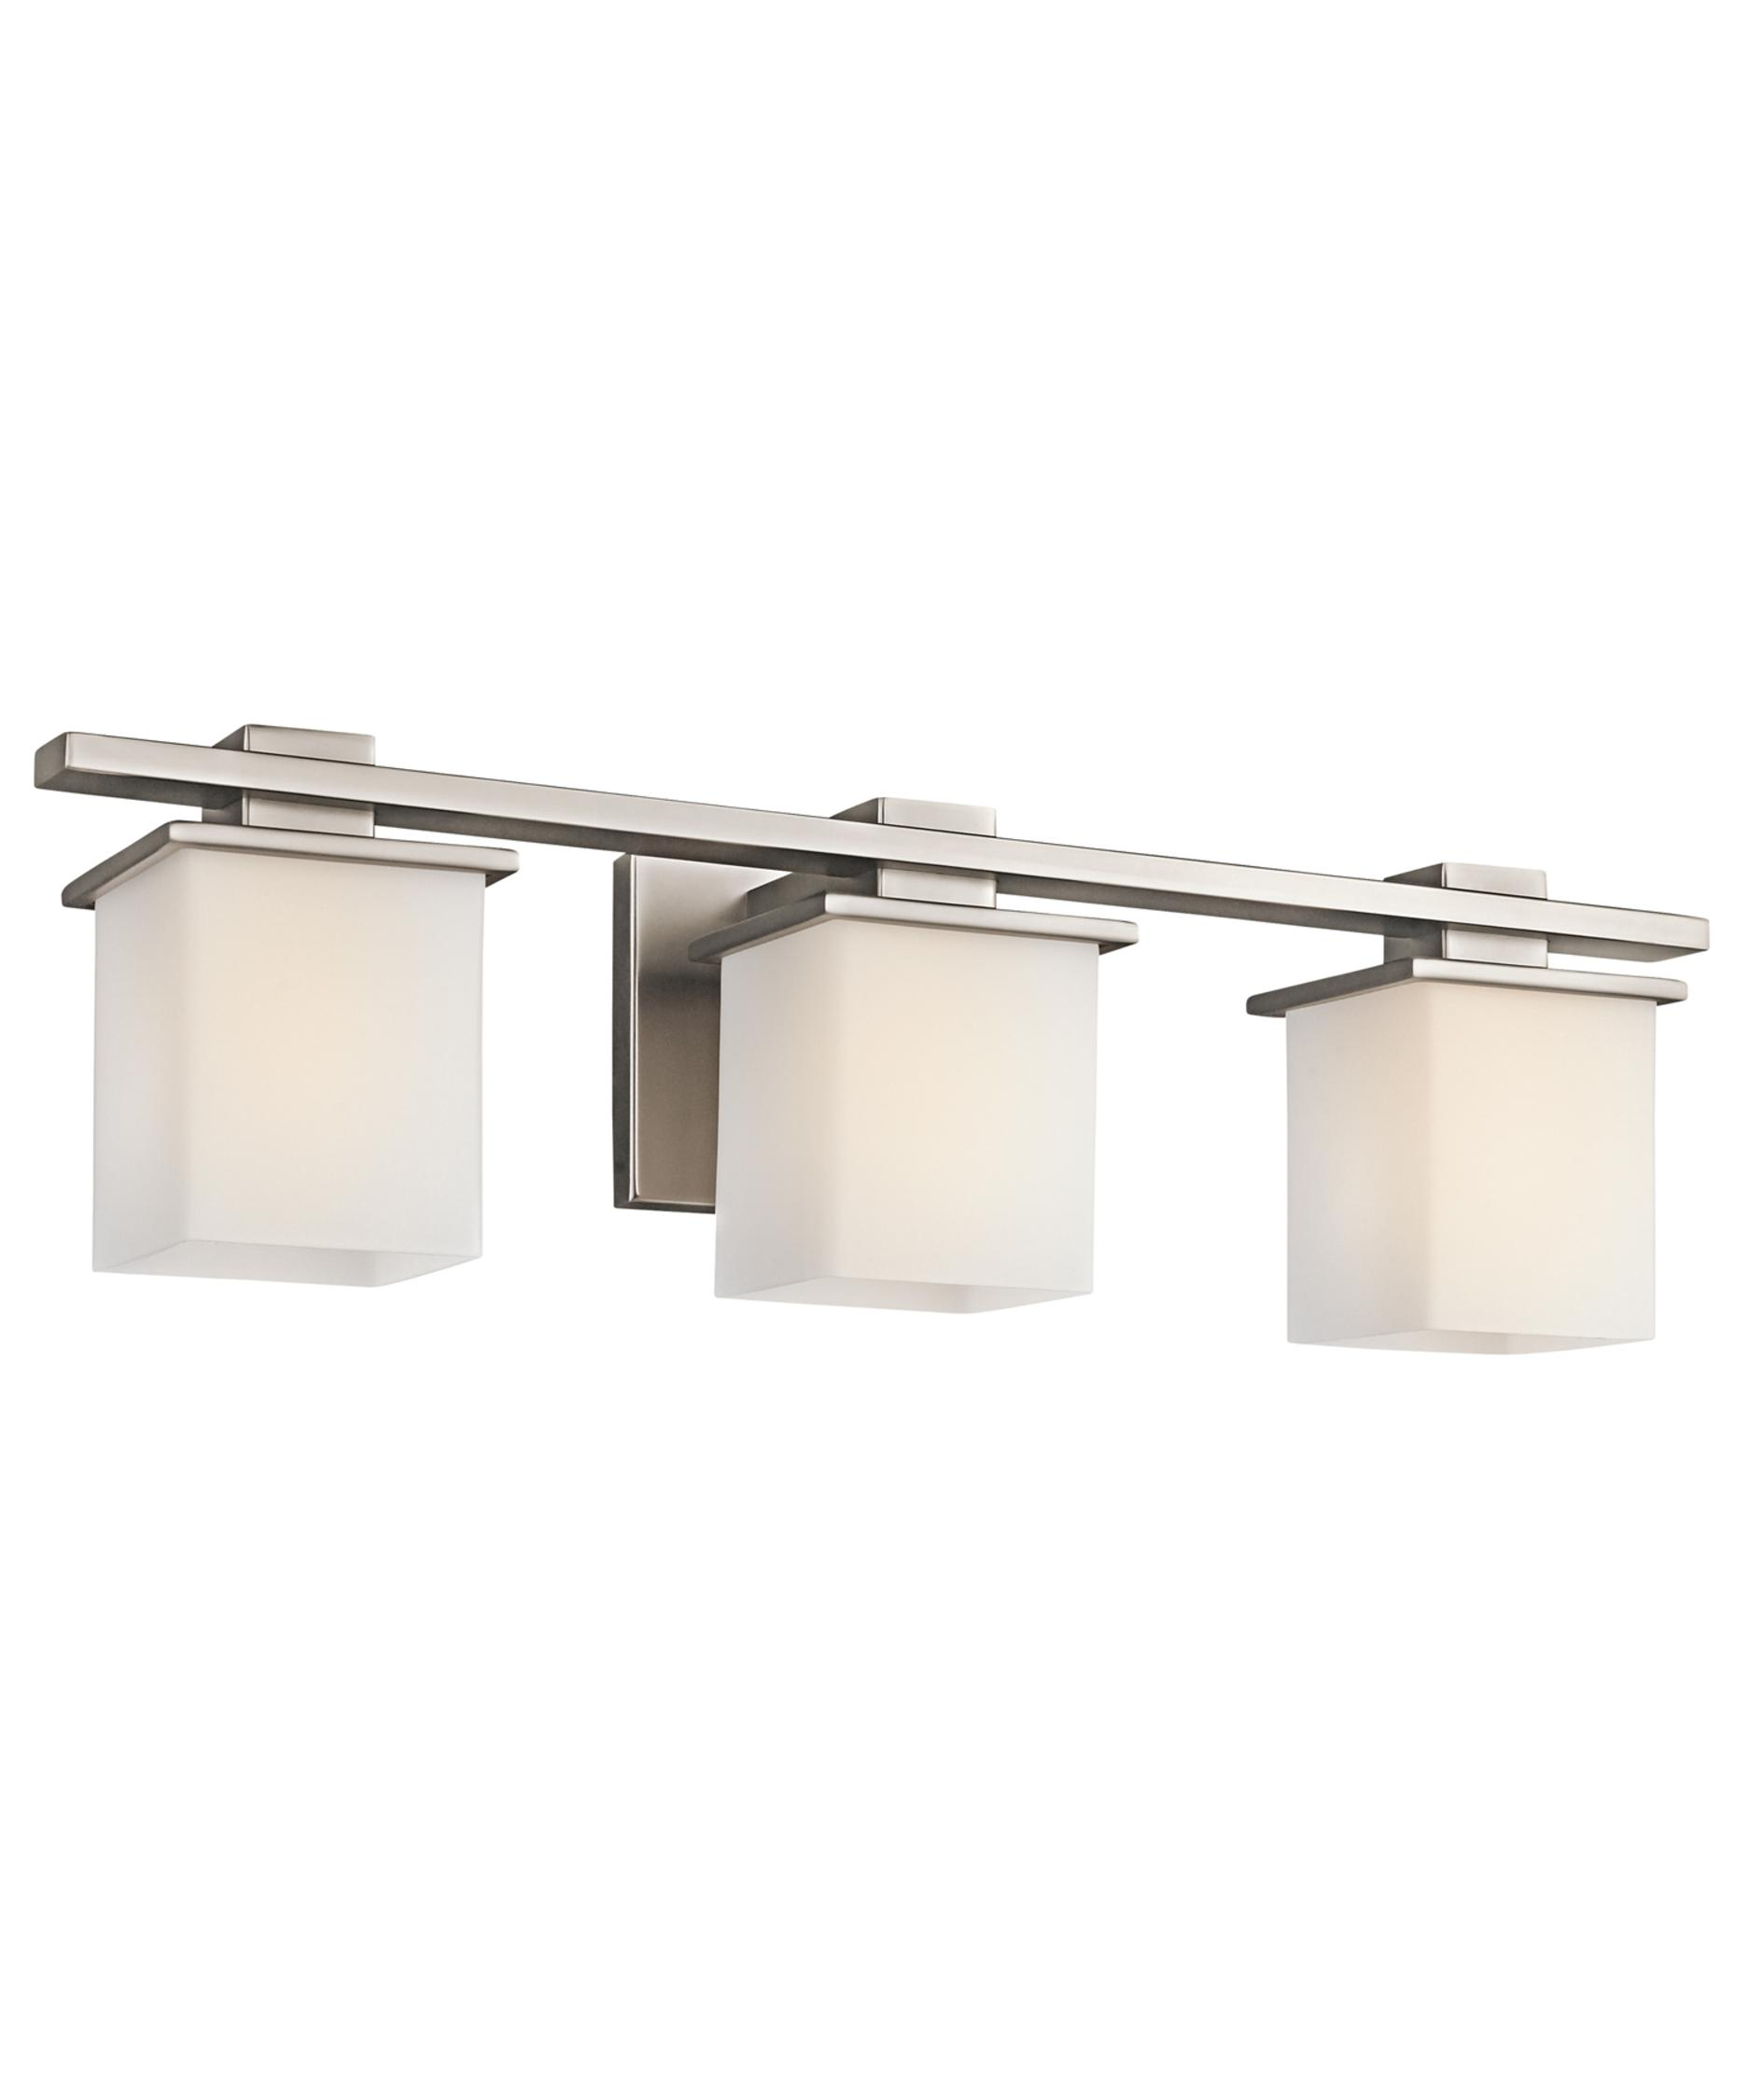 Bathroom vanity lights brushed nickel - Tully 24 Inch Wide Bath Vanity Light